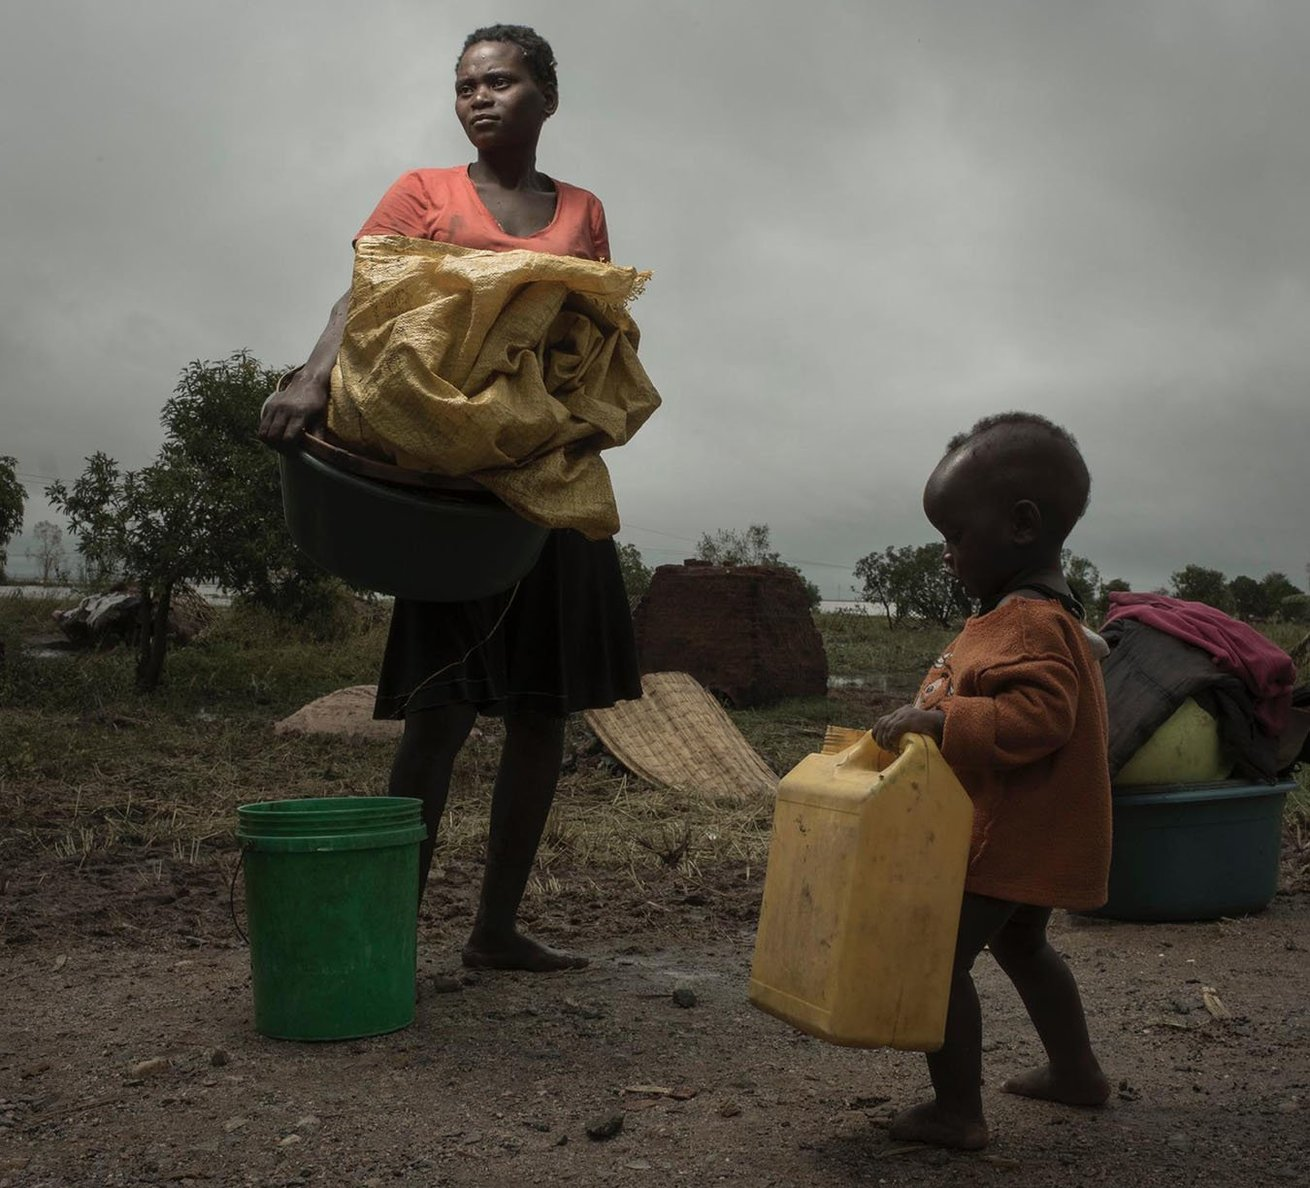 Mozambique was hit by a Category 4 Hurricane on March 16, 2019. After the devastating 200 km/h winds days of rain followed. Swollen rivers burst banks and damns hit over capacity. With over 400,000 people displaced in the center of the country, thousands of lives hang in the balance. The government, the UN and NGO's are working to save lives and help the recovery effort. CARE is on the ground in these operations. Photo by Josh Estey/CARE